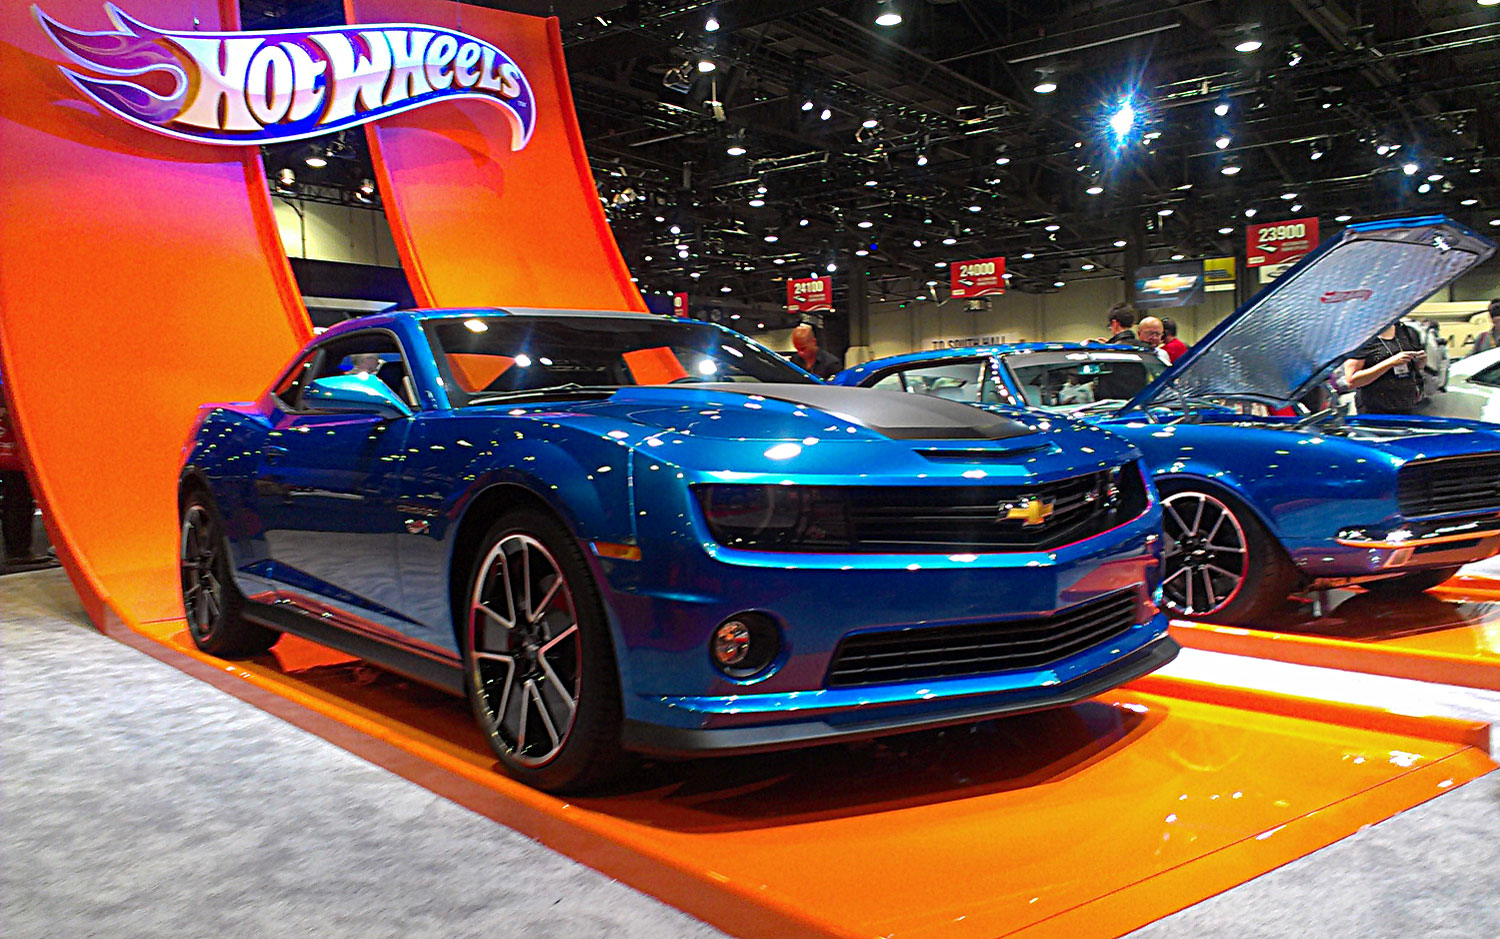 2014 Chevrolet Impala New And Old Camaros Cars Magazine